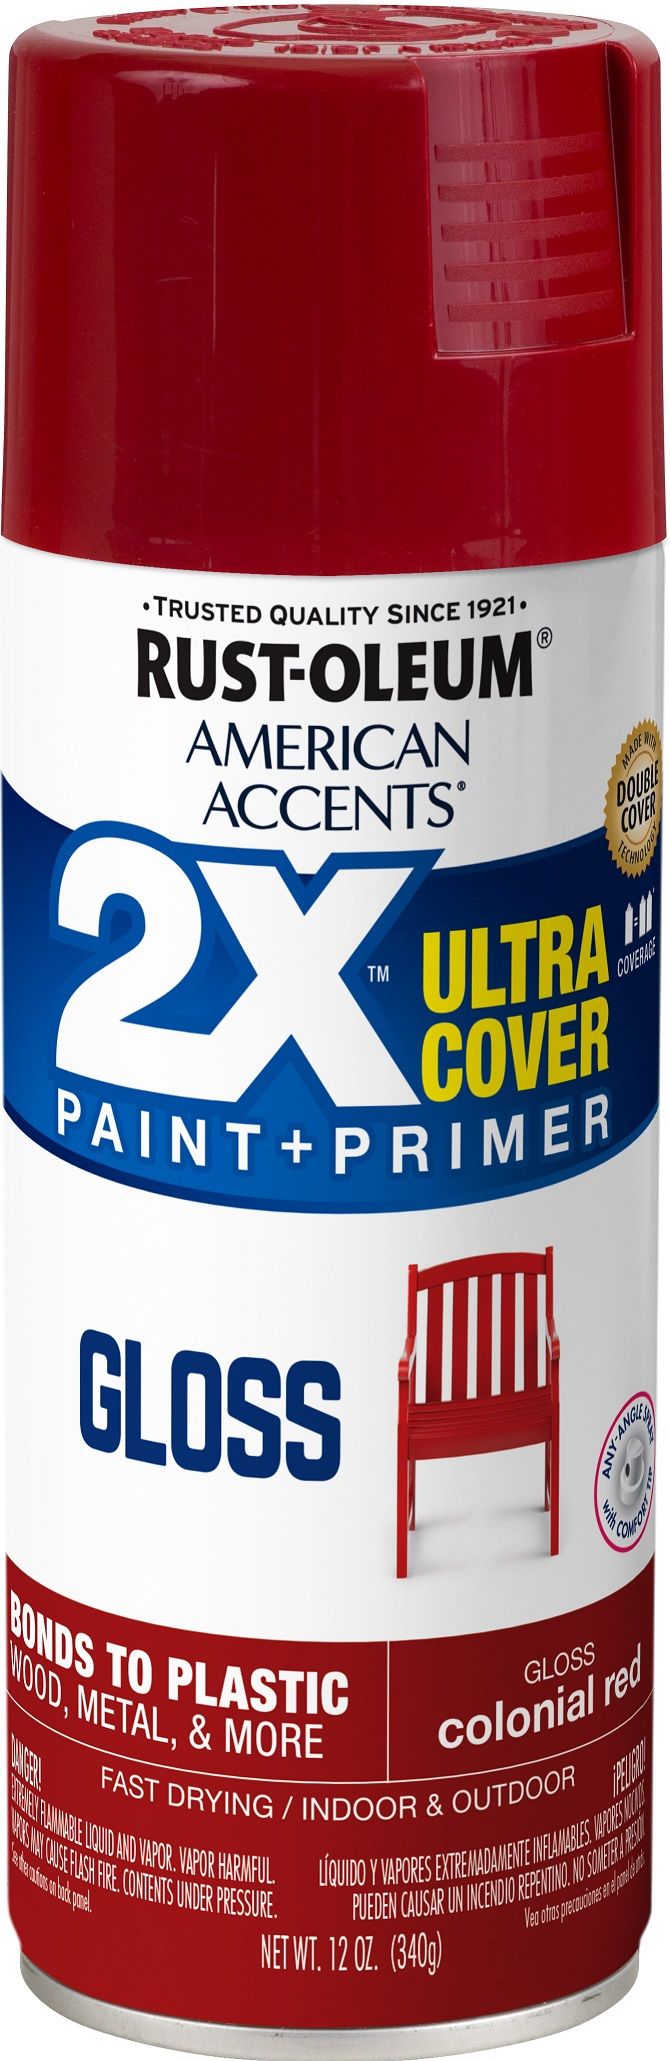 (3 Pack) Rust-Oleum American Accents Ultra Cover 2X Gloss Colonial Red Spray Paint and Primer in 1, 12 oz